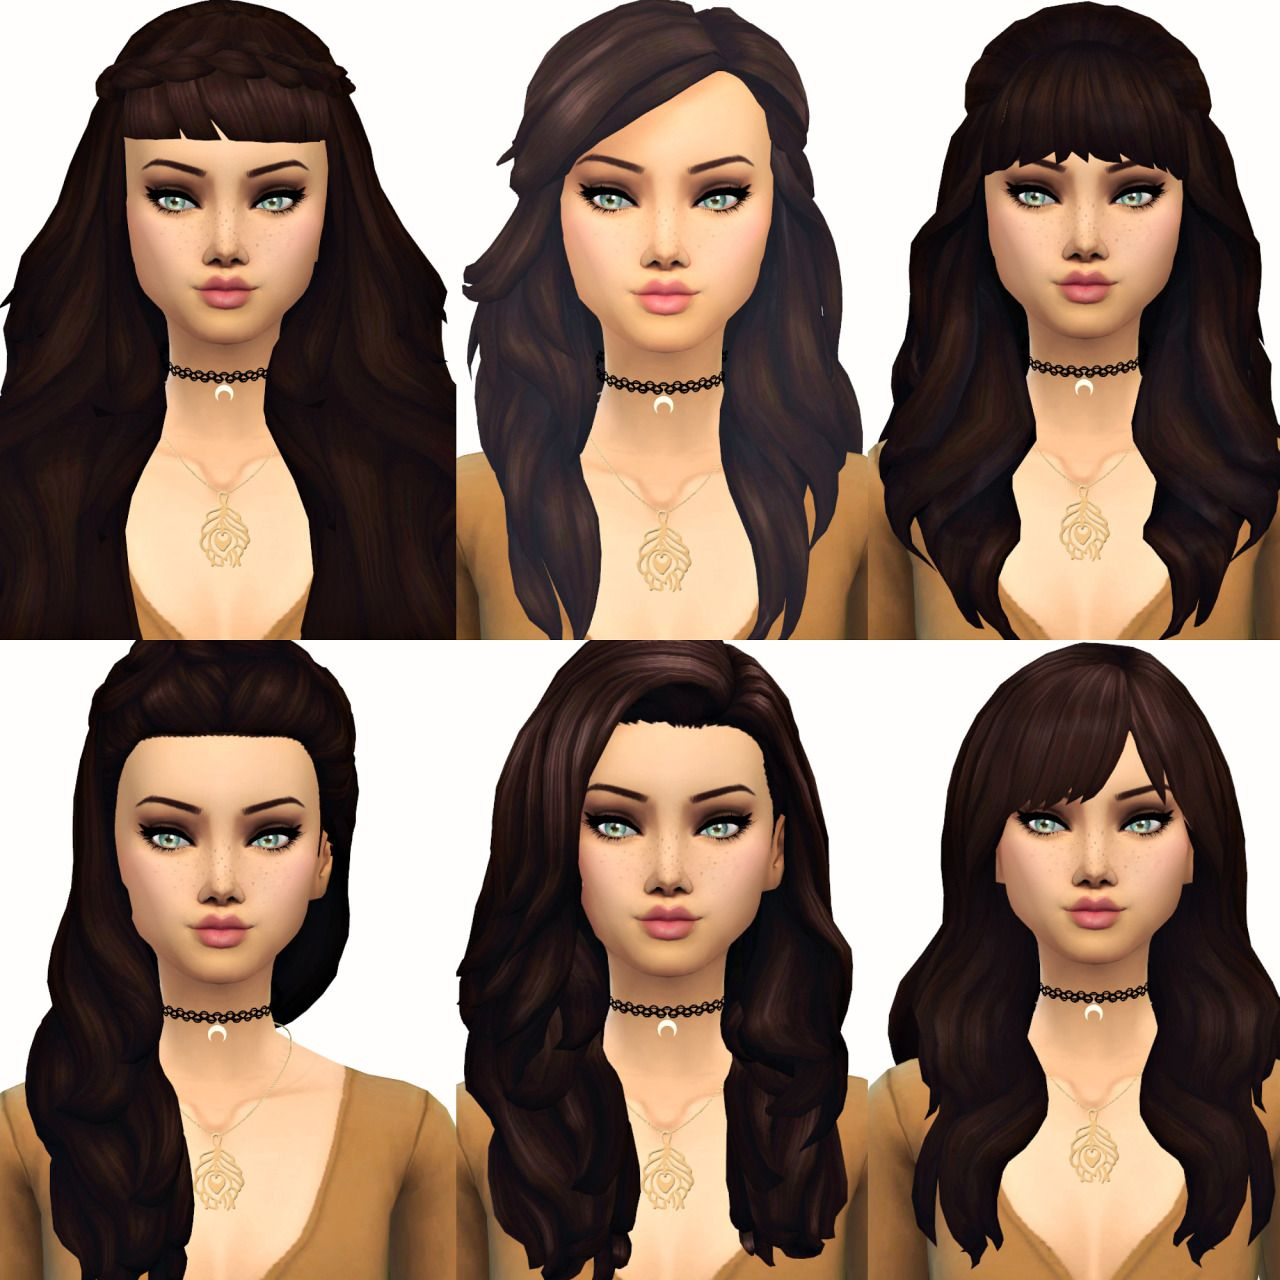 Current Favourite Maxis Match Hair 2 (From left to right, then down